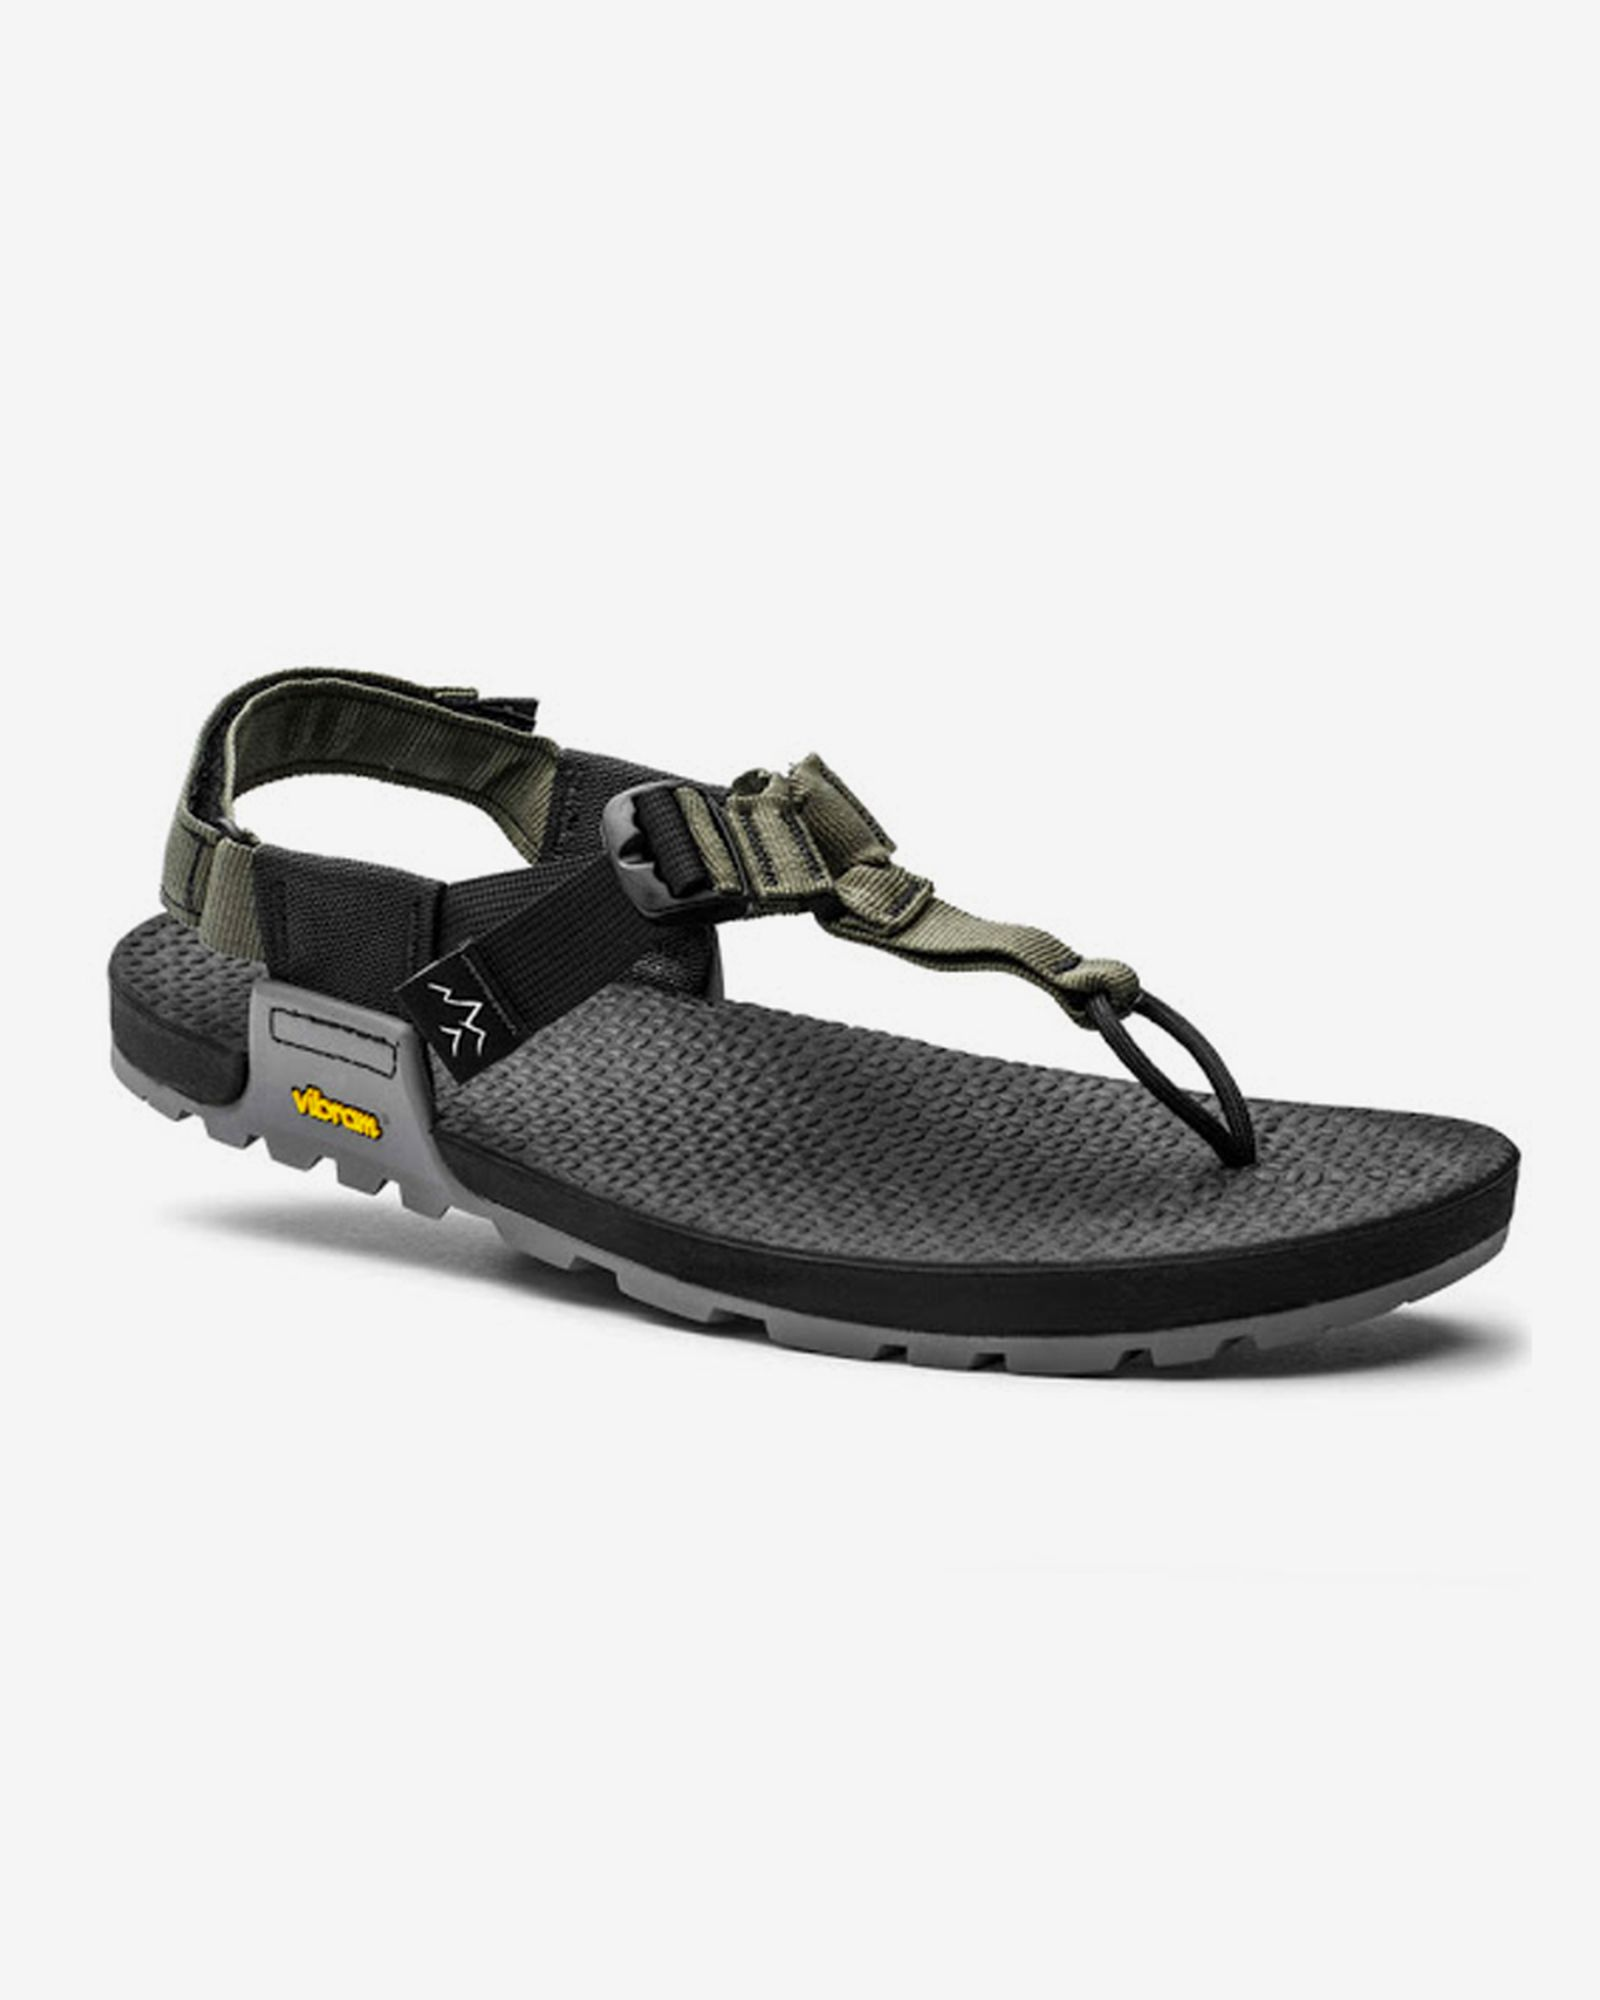 dad-sandals-roundtable-shopping-guide-03